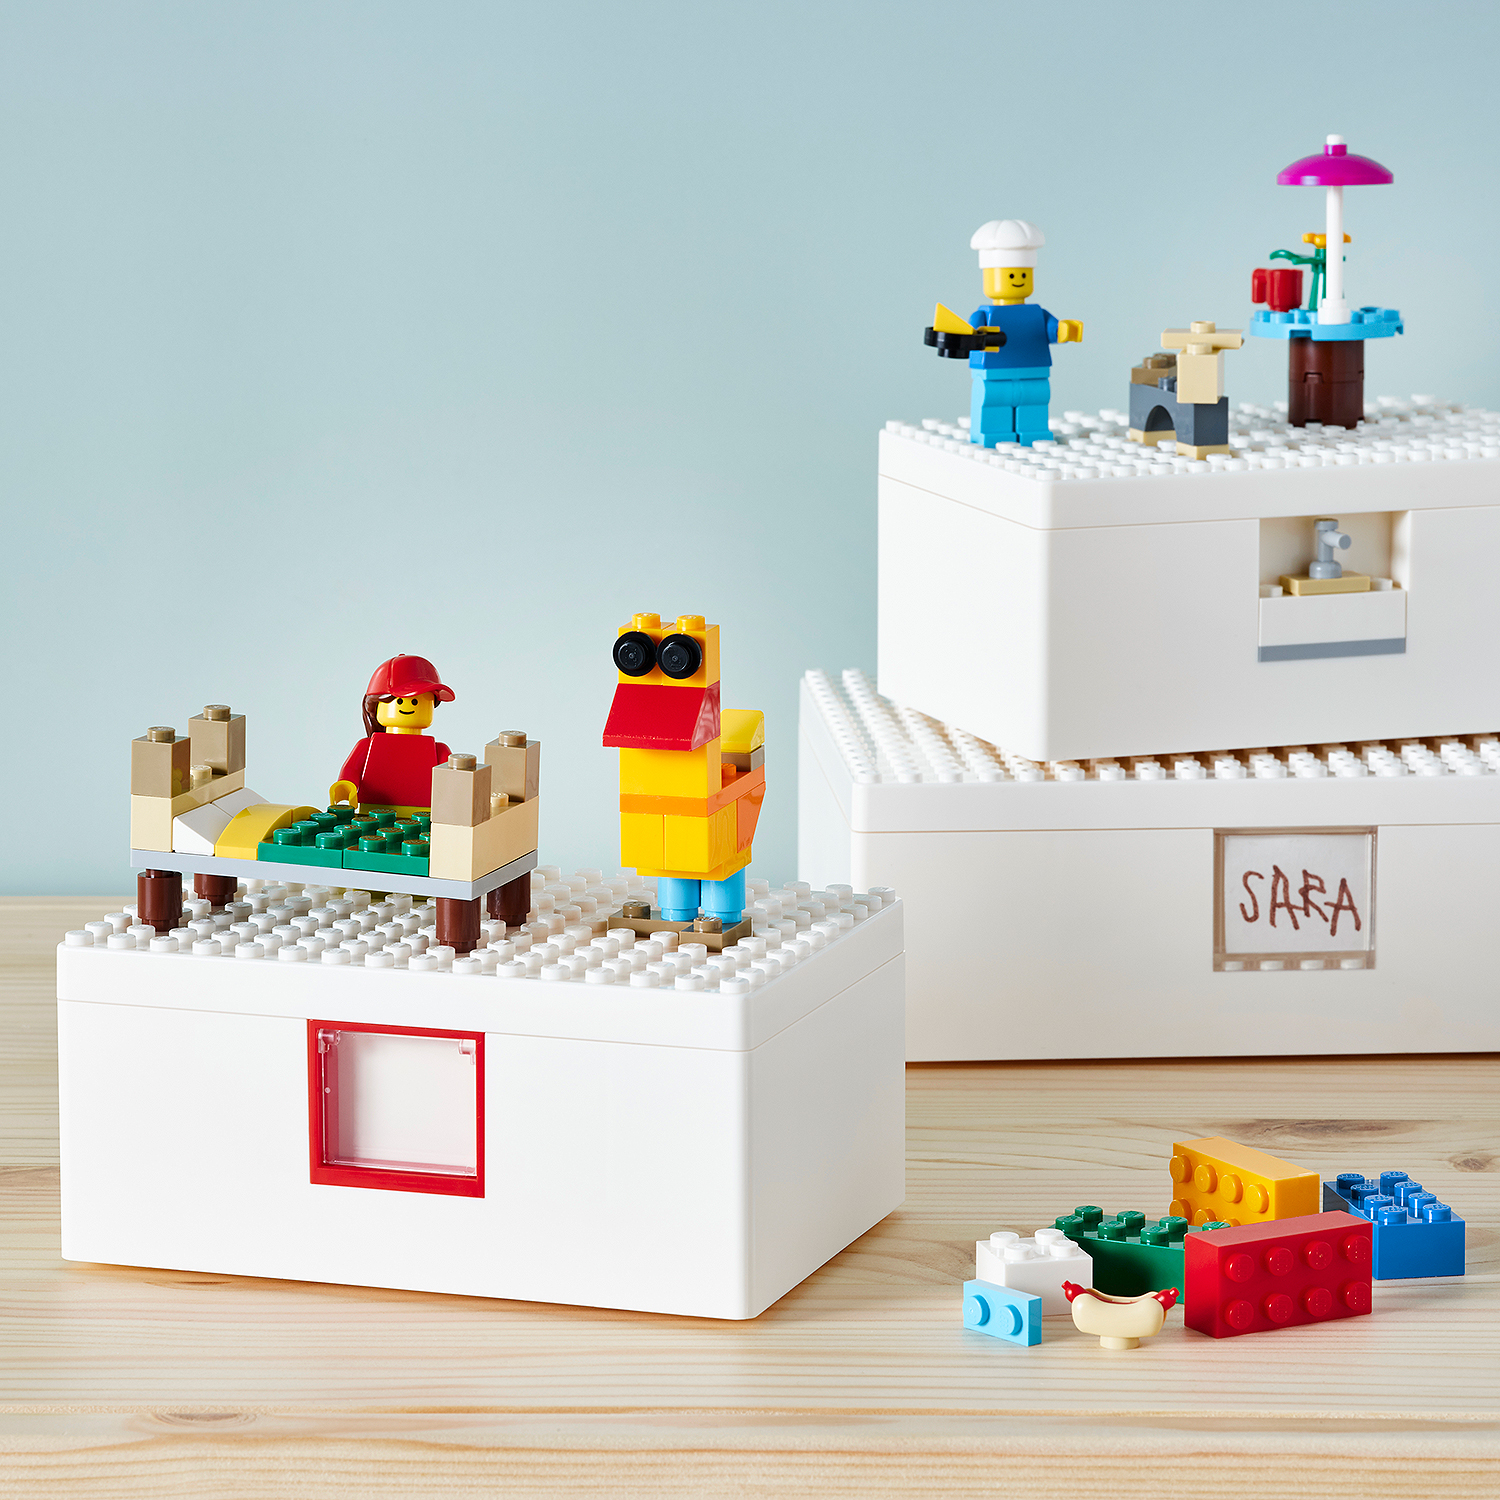 IKEA partners with LEGO for unique storage boxes that double as play structures 15